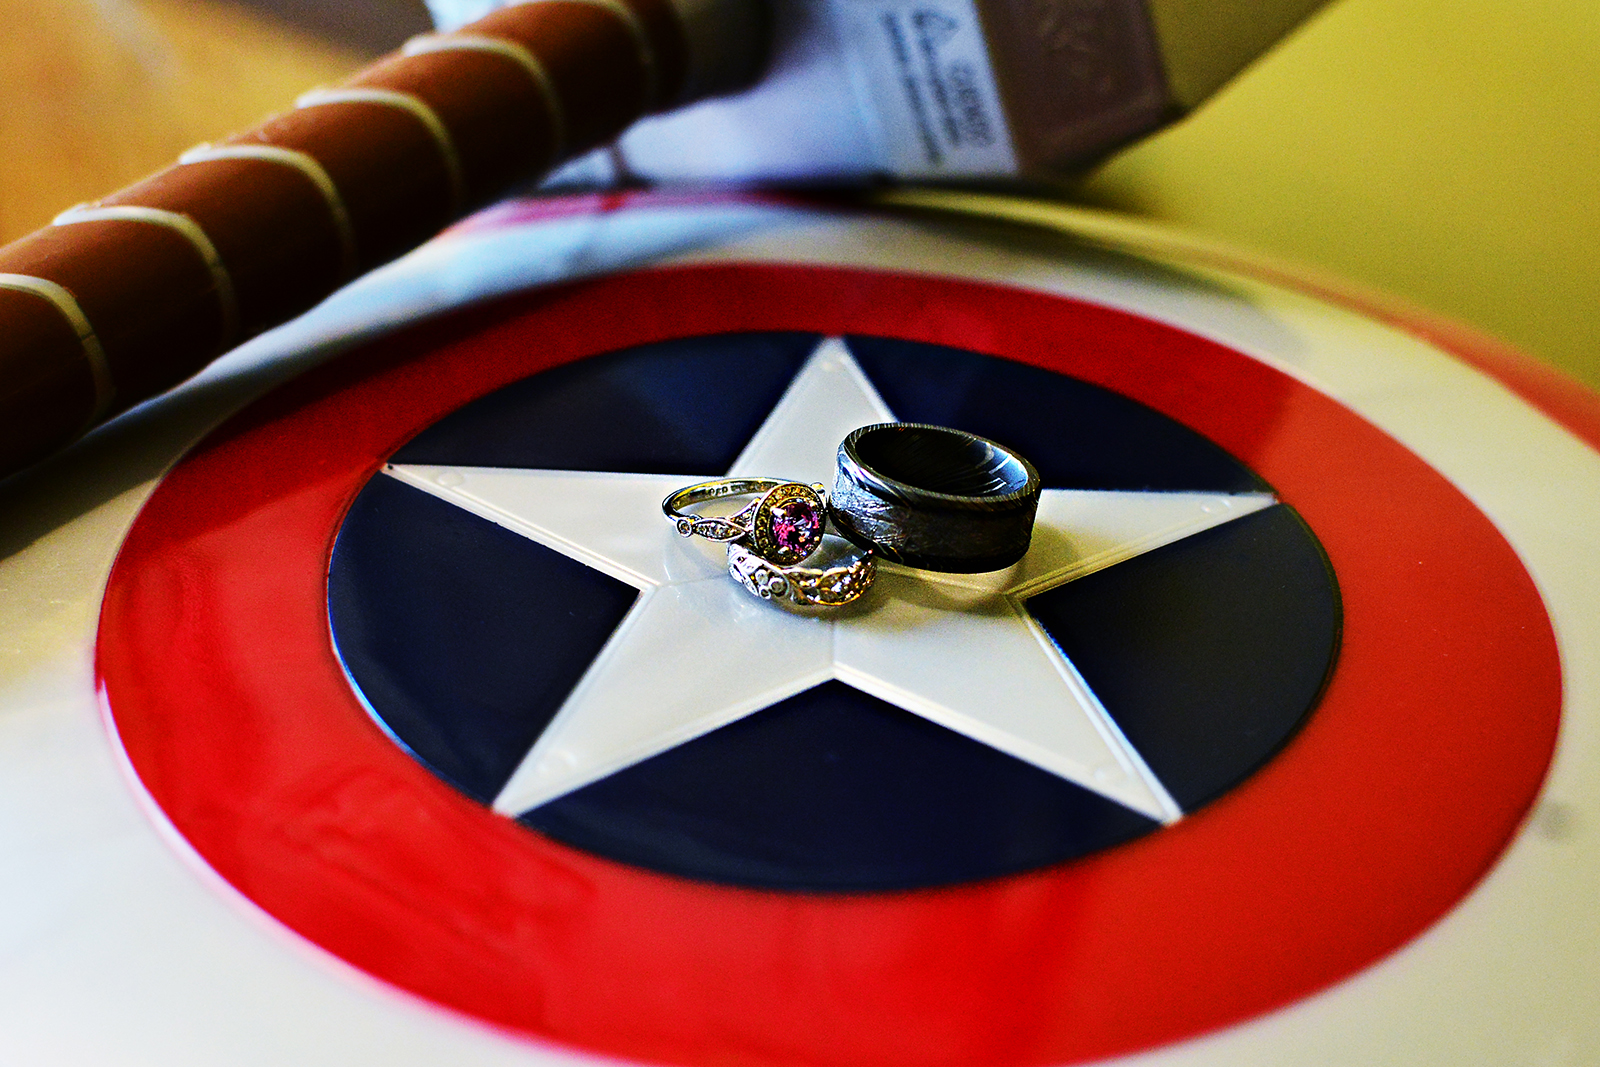 cake, wedding cake, stephy wong photography, wedding details, super hero wedding details, captain america wedding